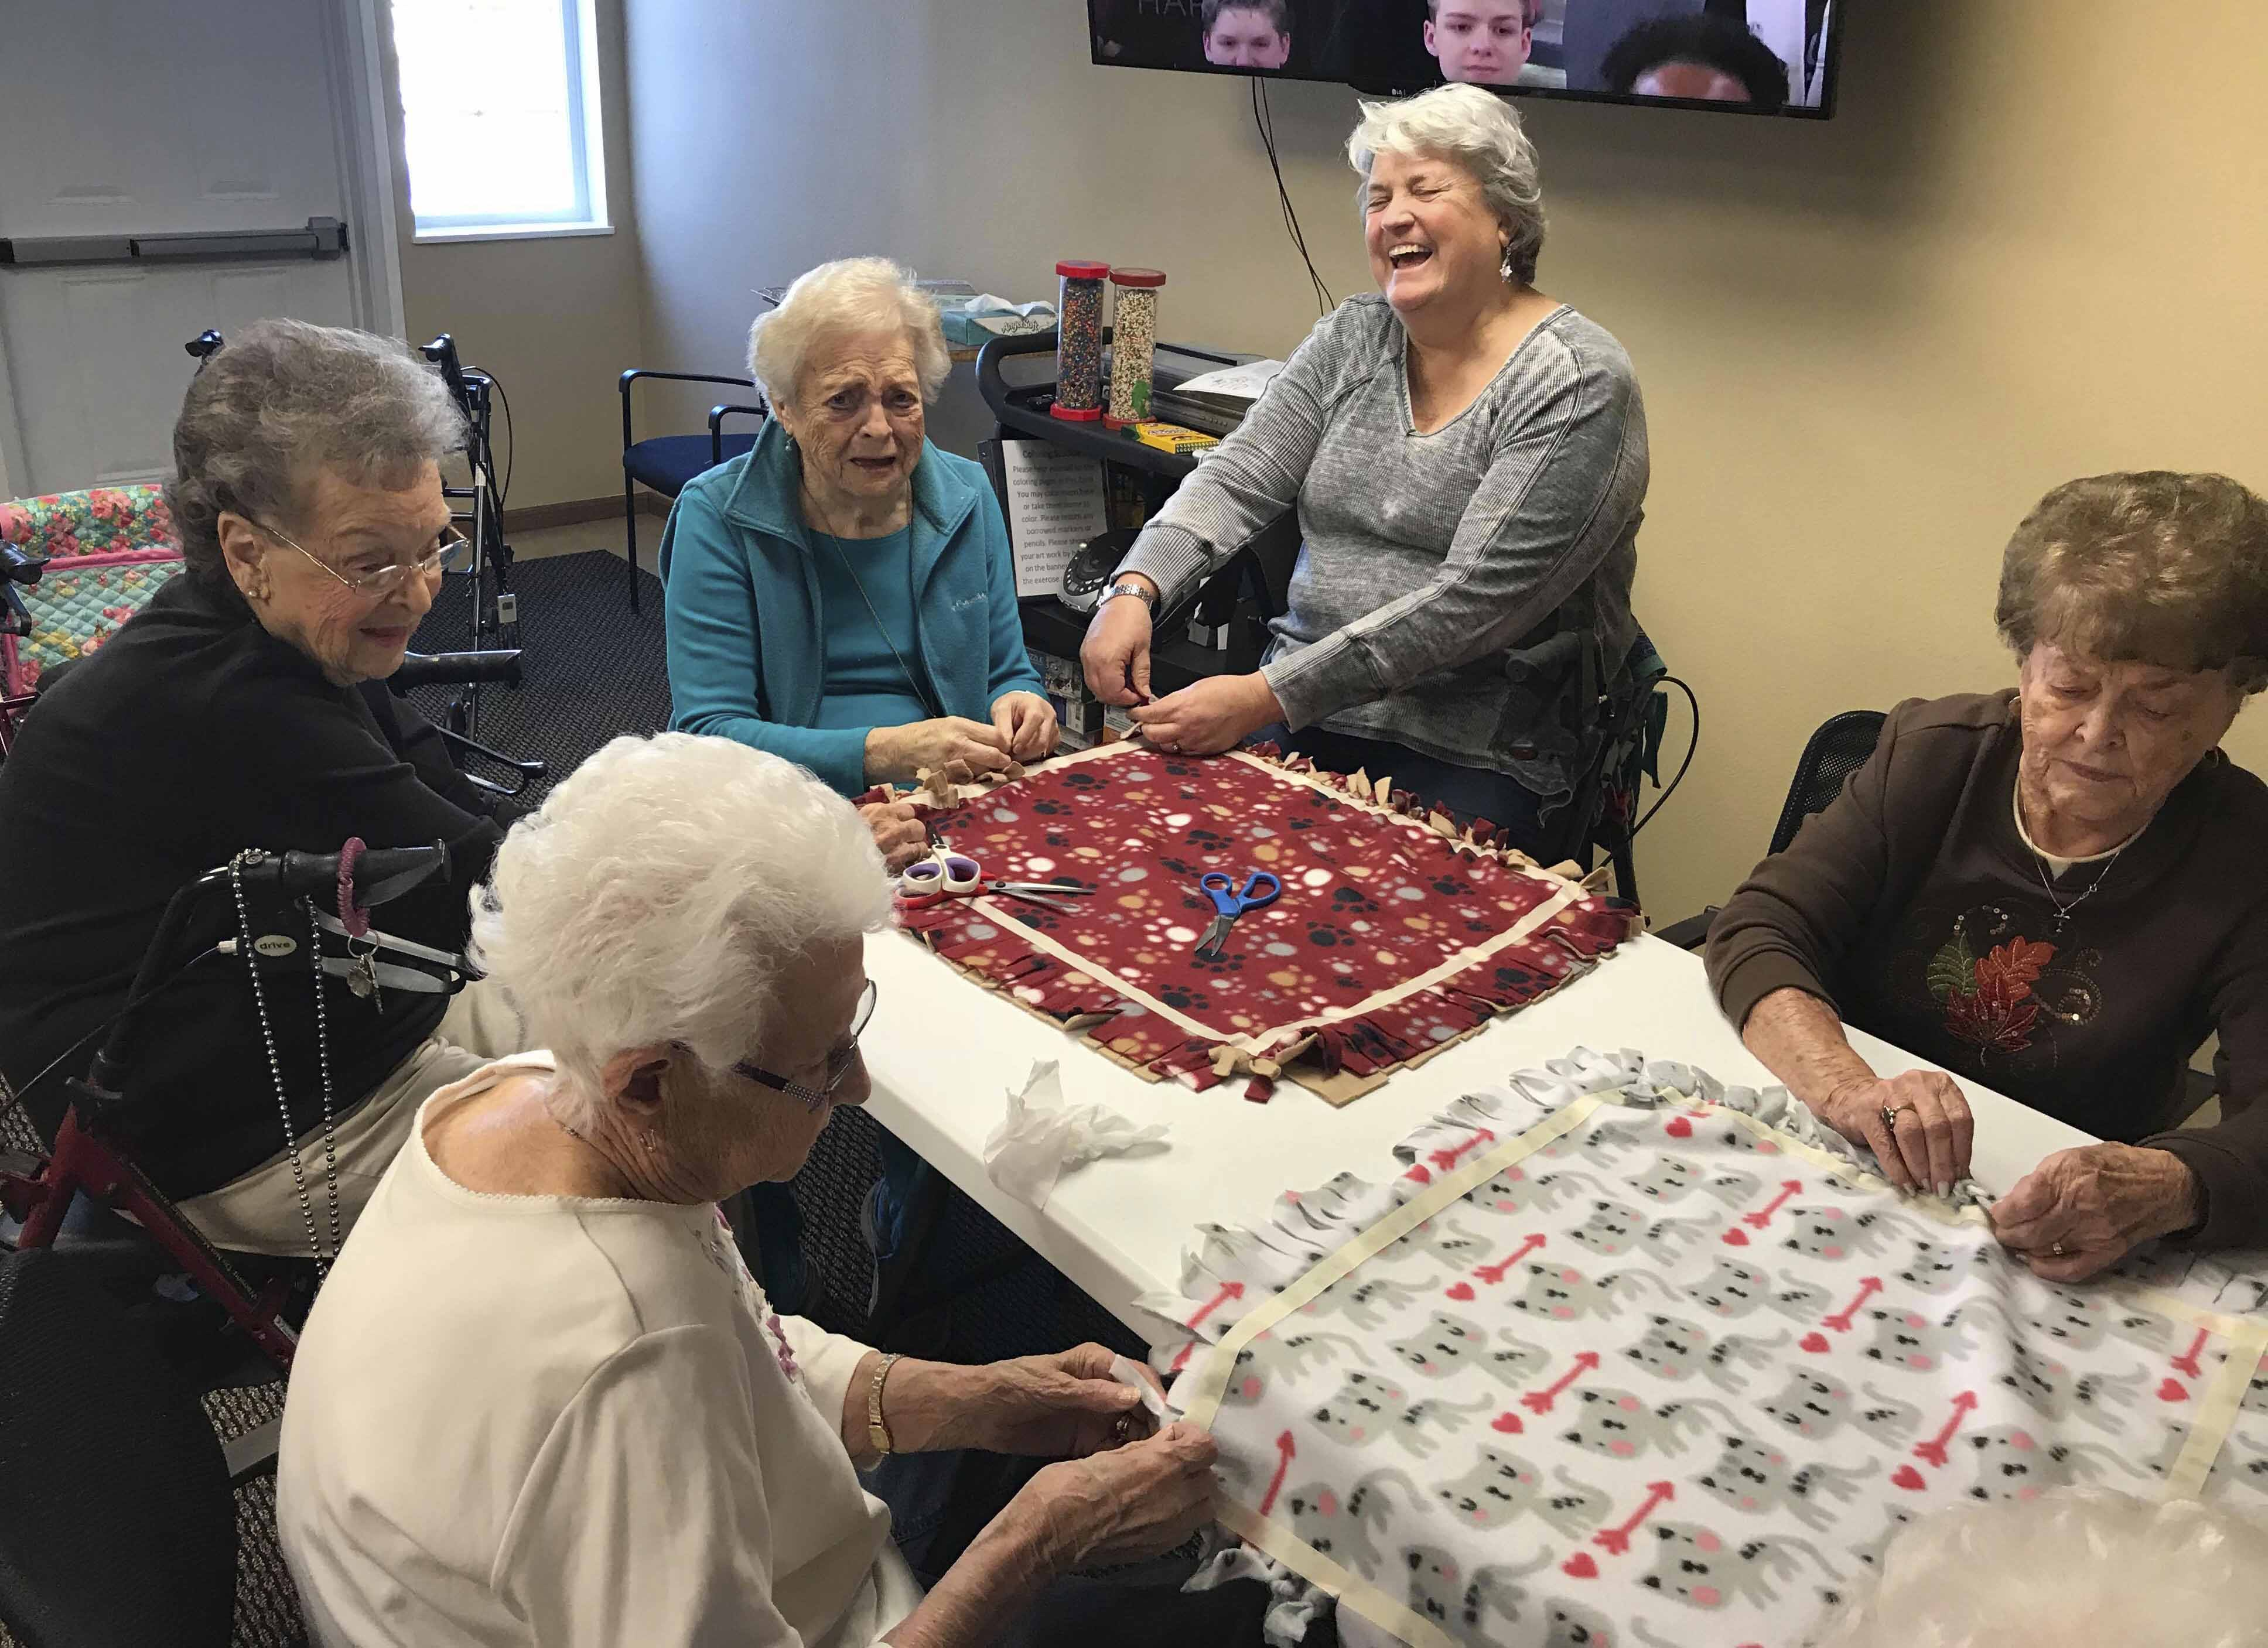 Tenants and family members work on cutting and tying fleece blankets for the dogs and cats at the AWF shelter in Monticello. Clockwise from bottom left are Doris Husmann, June Zirkelbach, Rosemary Welter, Welter's daughter Melinda Pyde, and Mary Jo Lorenzen.